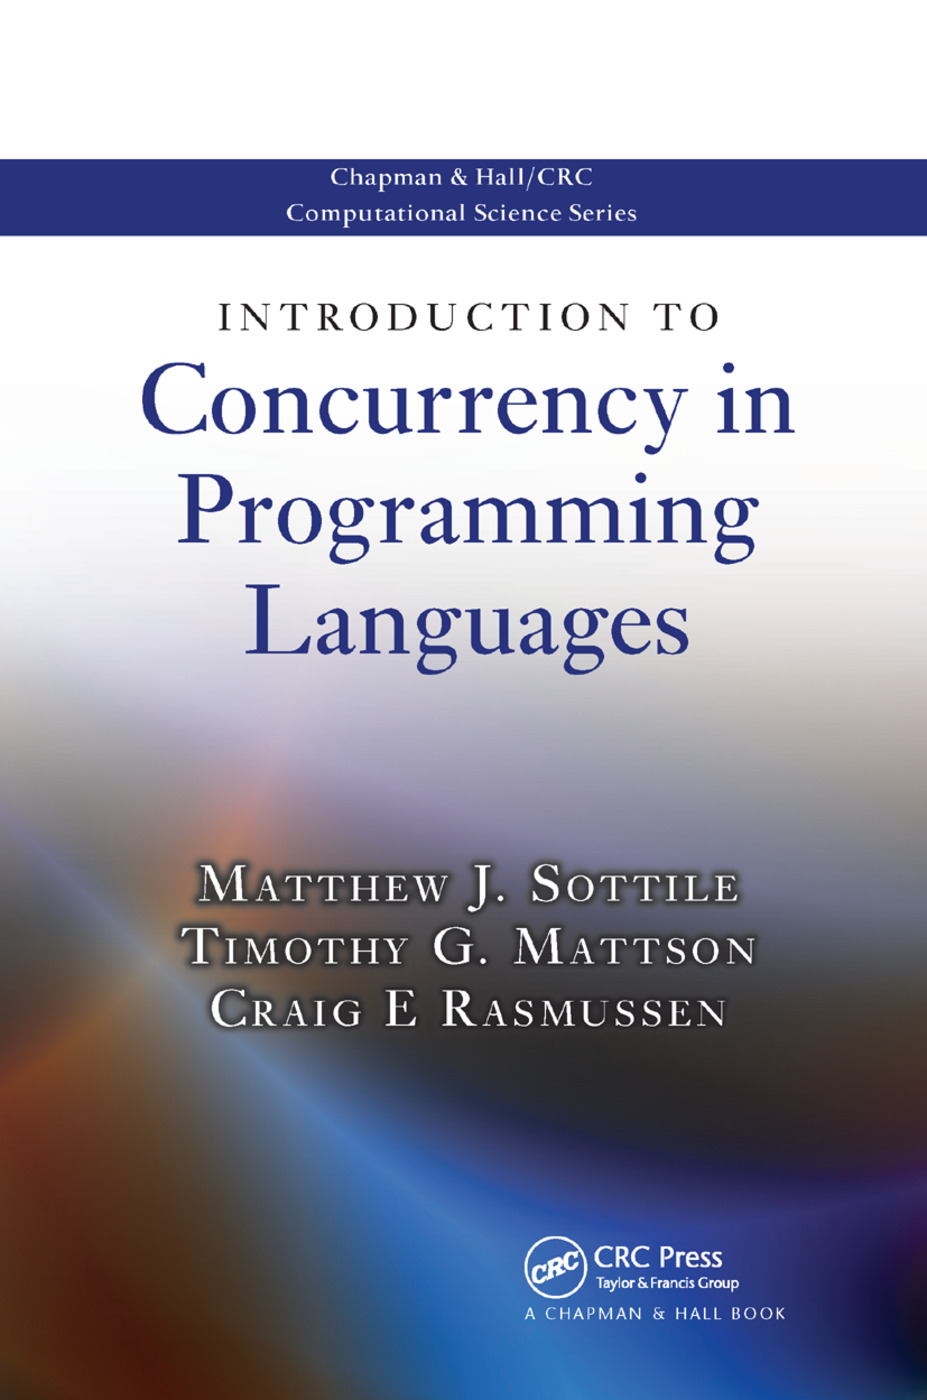 Introduction to Concurrency in Programming Languages: 1st Edition (Paperback) book cover